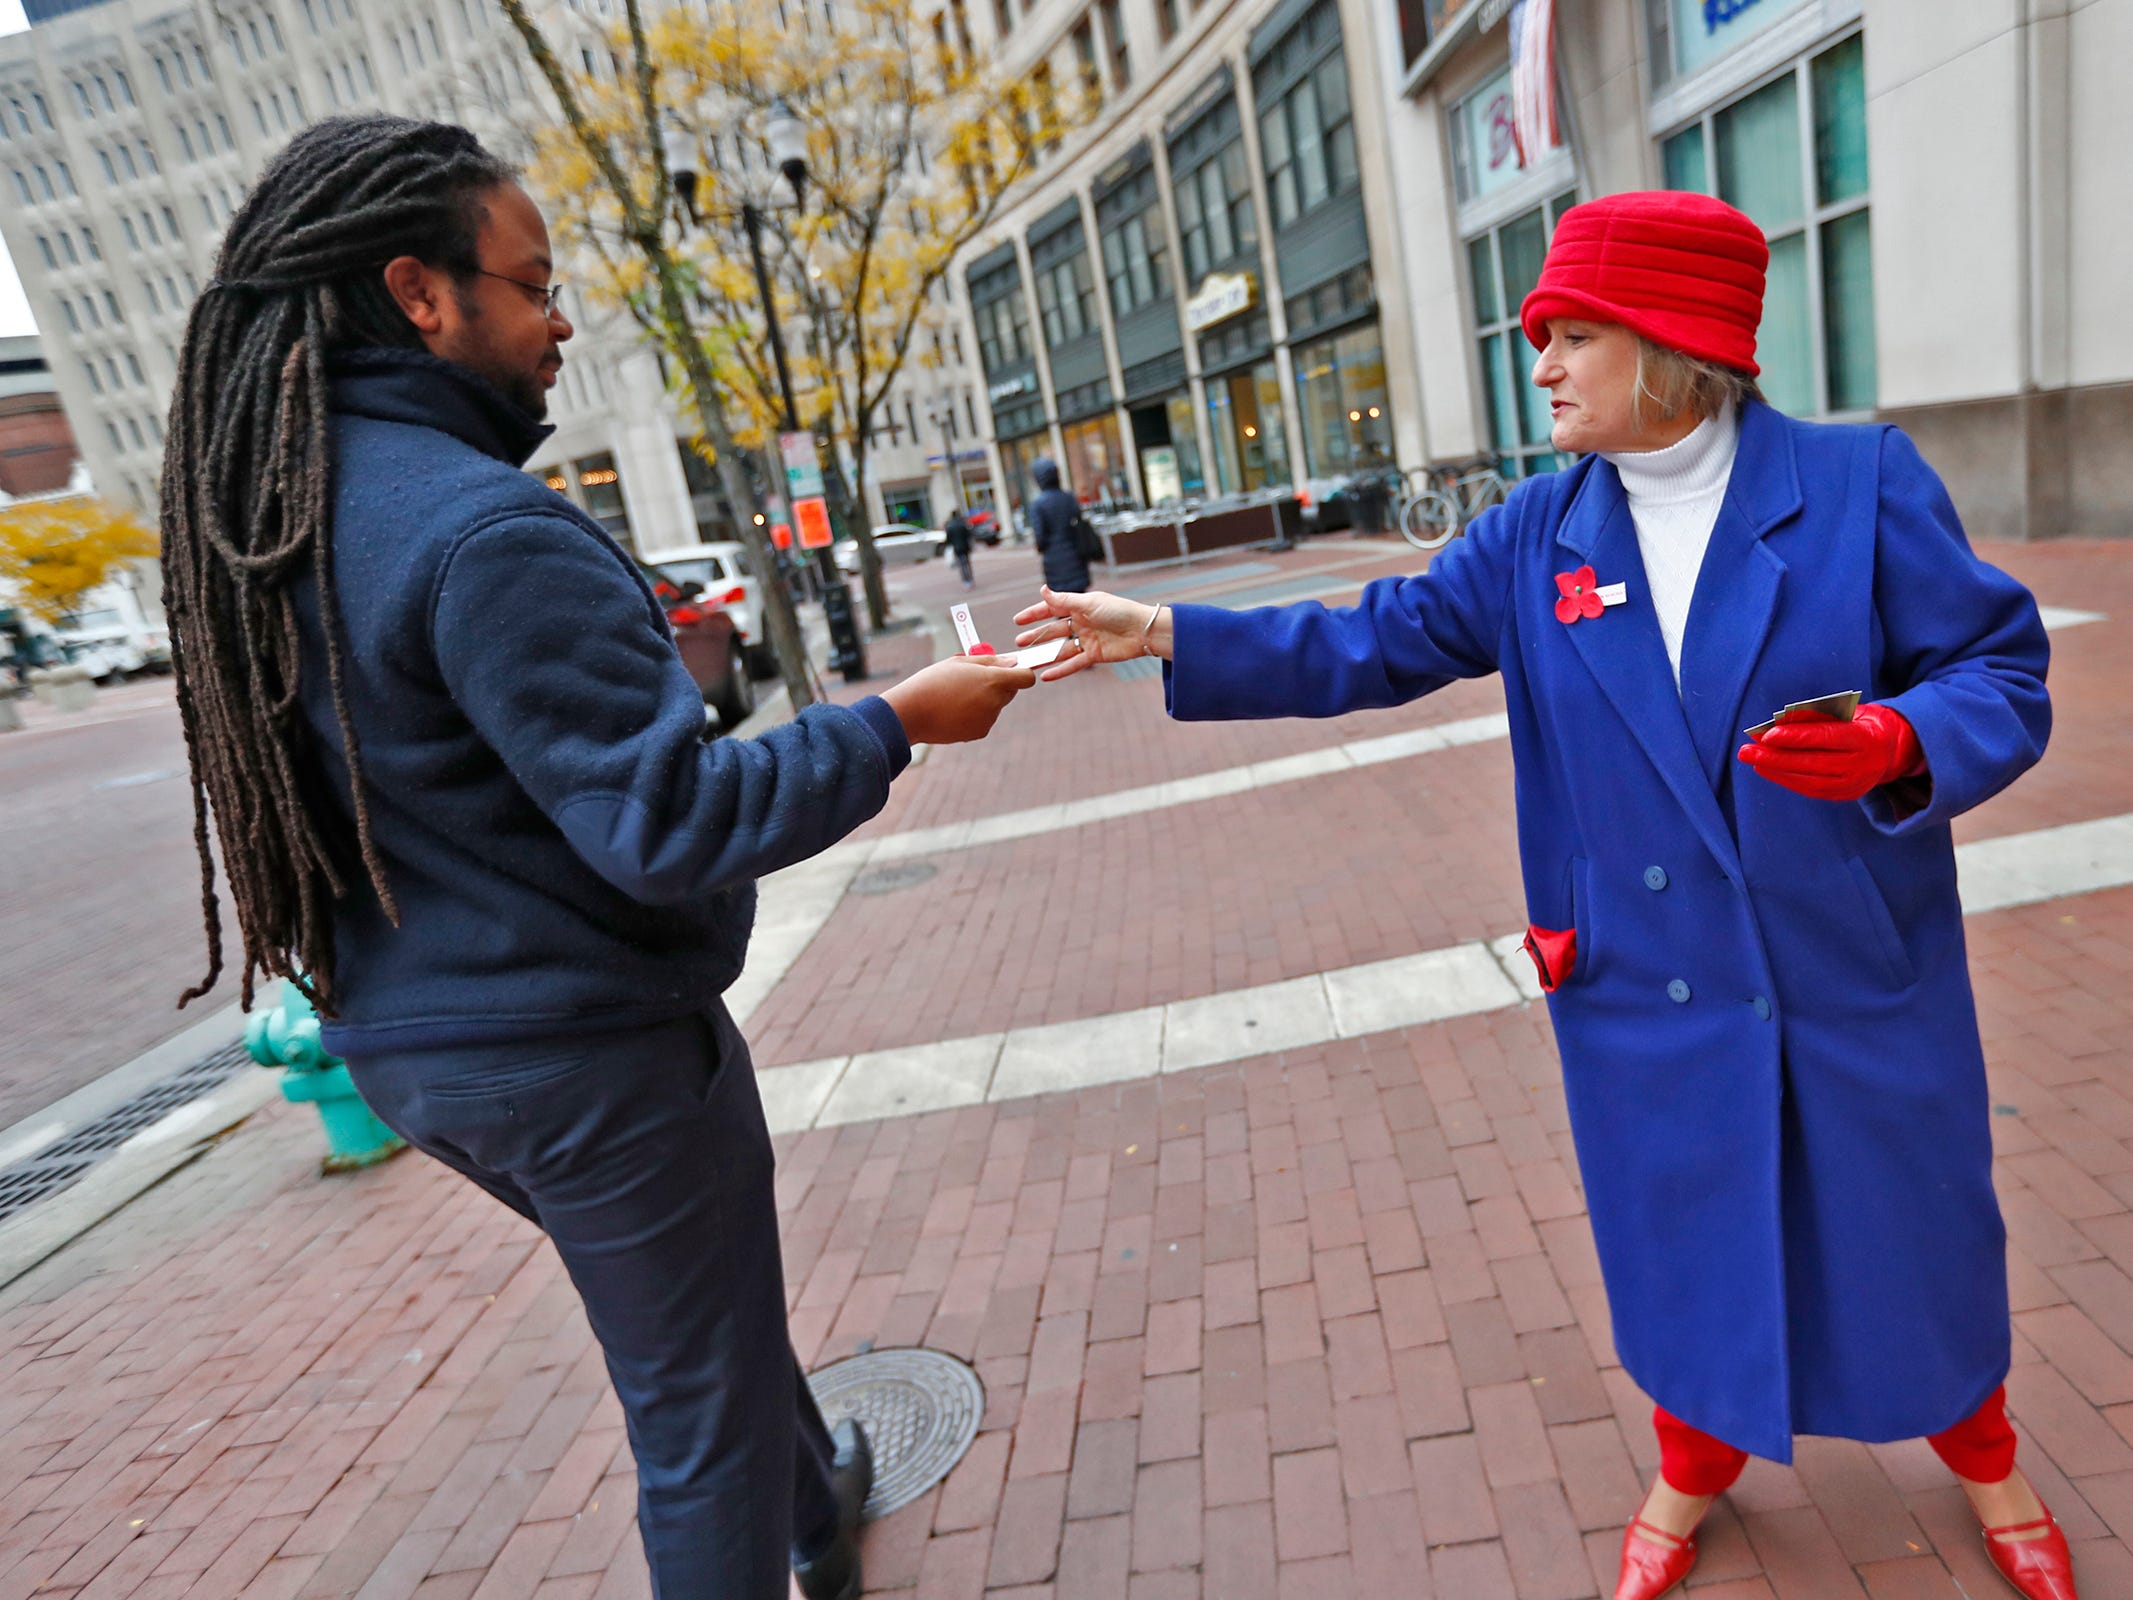 Marie Beason, Executive Director of the Indiana War Memorials Foundation, right, as she gives away free Remembrance Poppies from the Indiana War Memorials Foundation (IWMF) and Emmis Communications, on Monument Circle, Friday, Nov. 9, 2018.  The flower give-away is in celebration of Veterans Day and the 100th anniversary of the end of World War I.